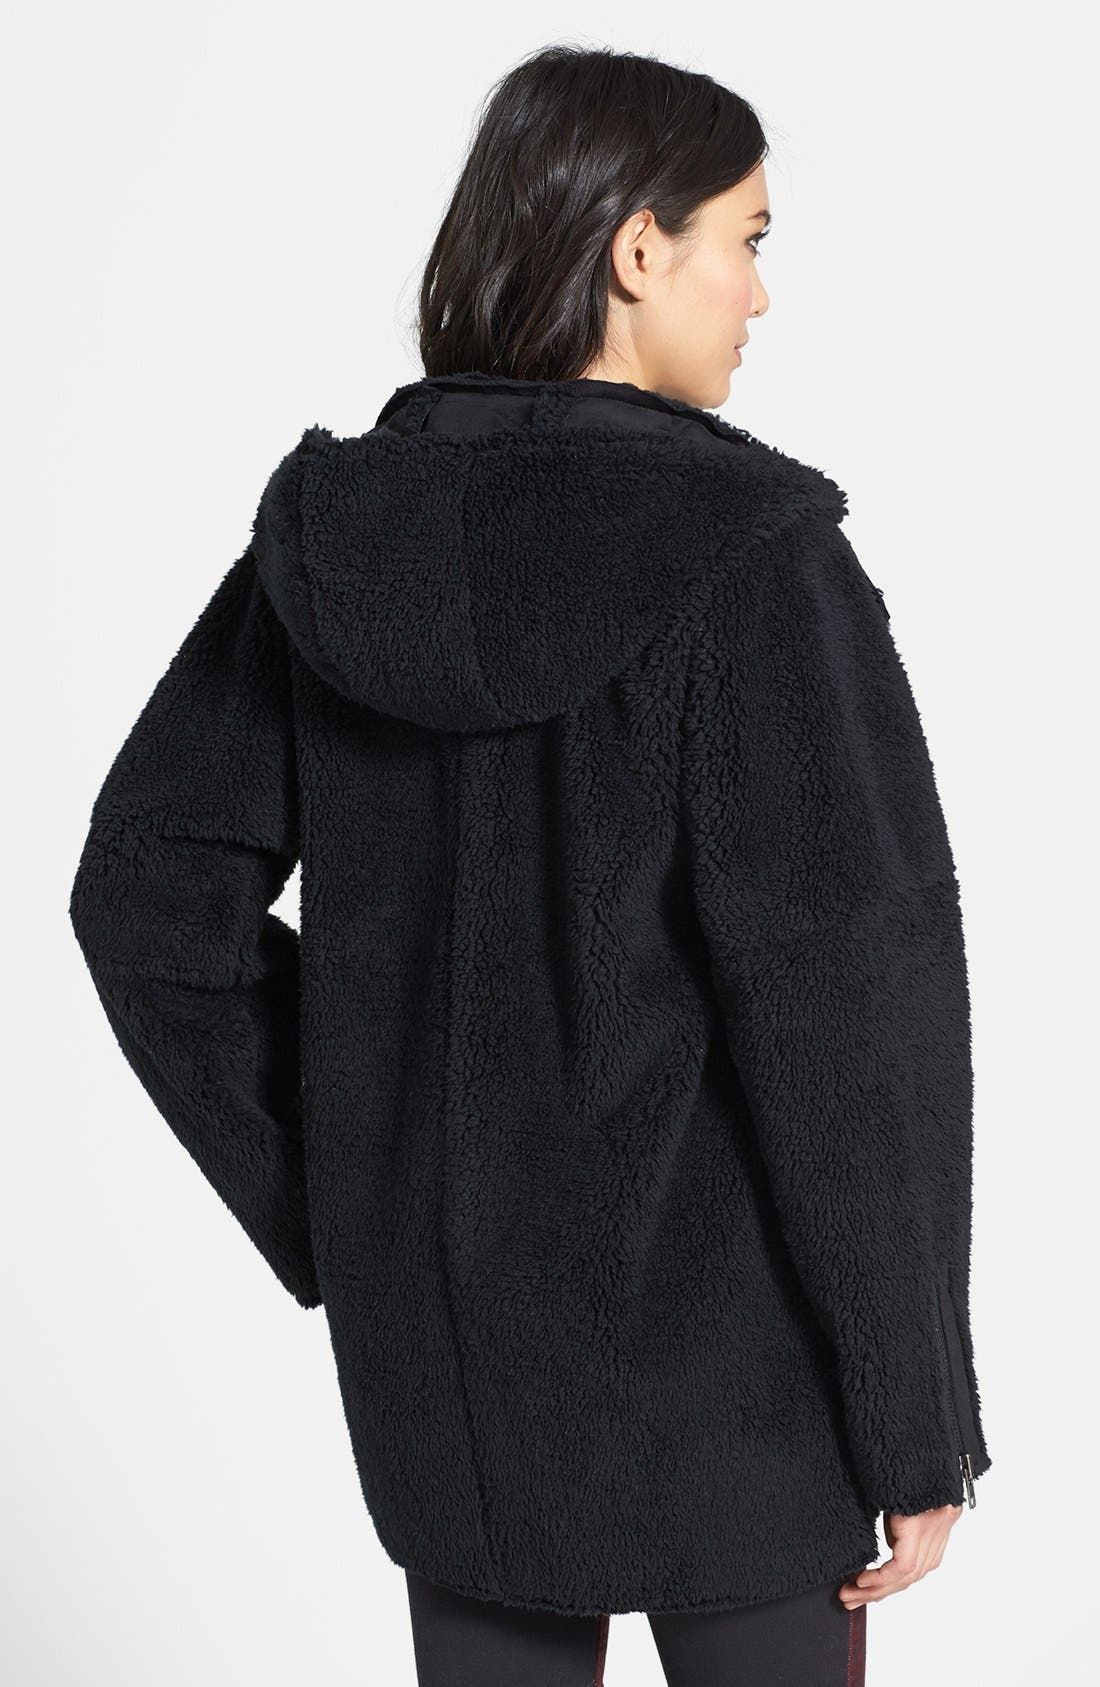 Oversized Fleece Coat,                             Alternate thumbnail 2, color,                             001